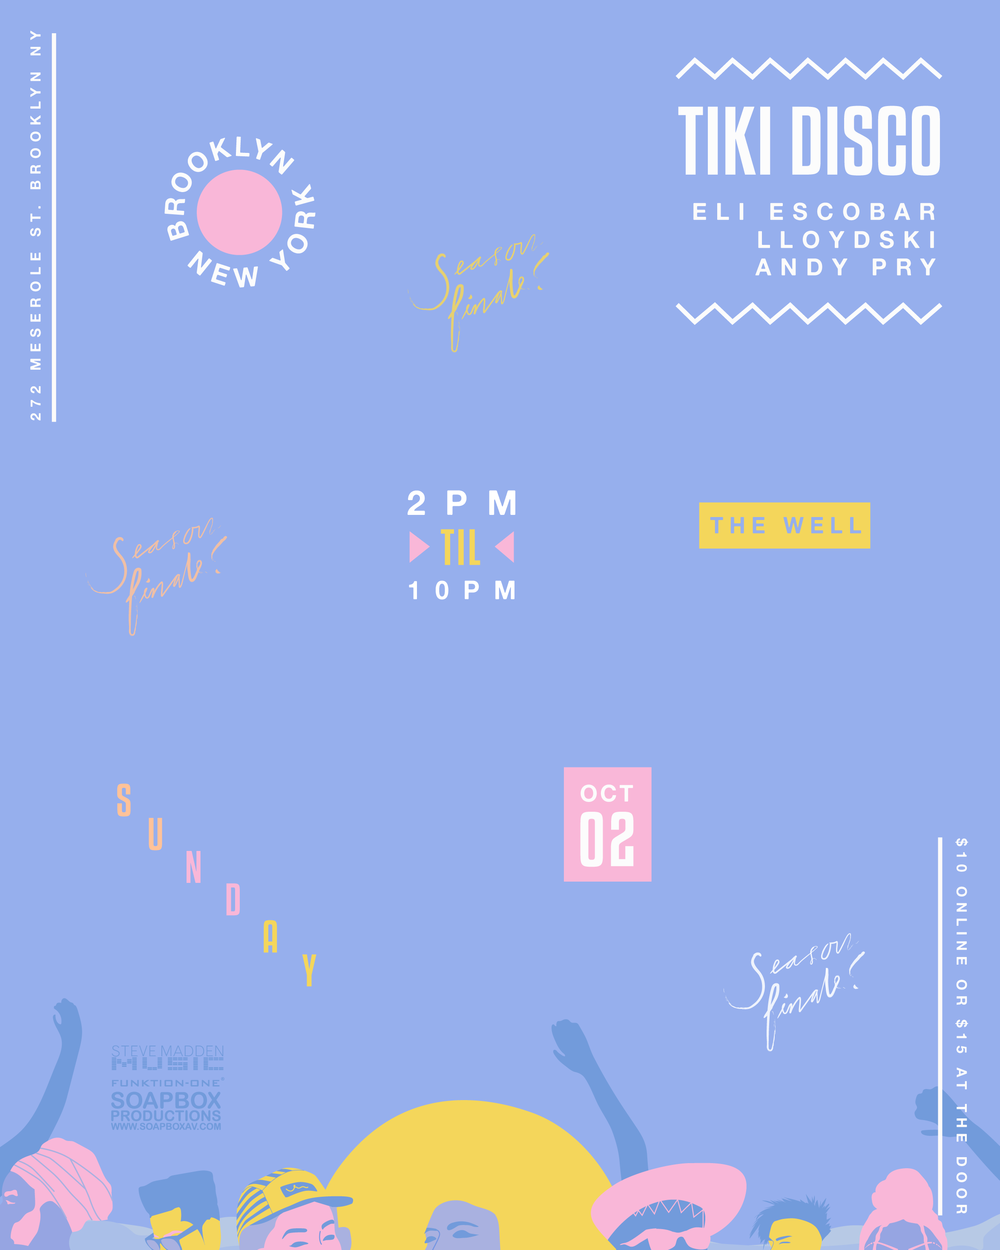 2016-09-22_tikidisco_poster_01 copy.png